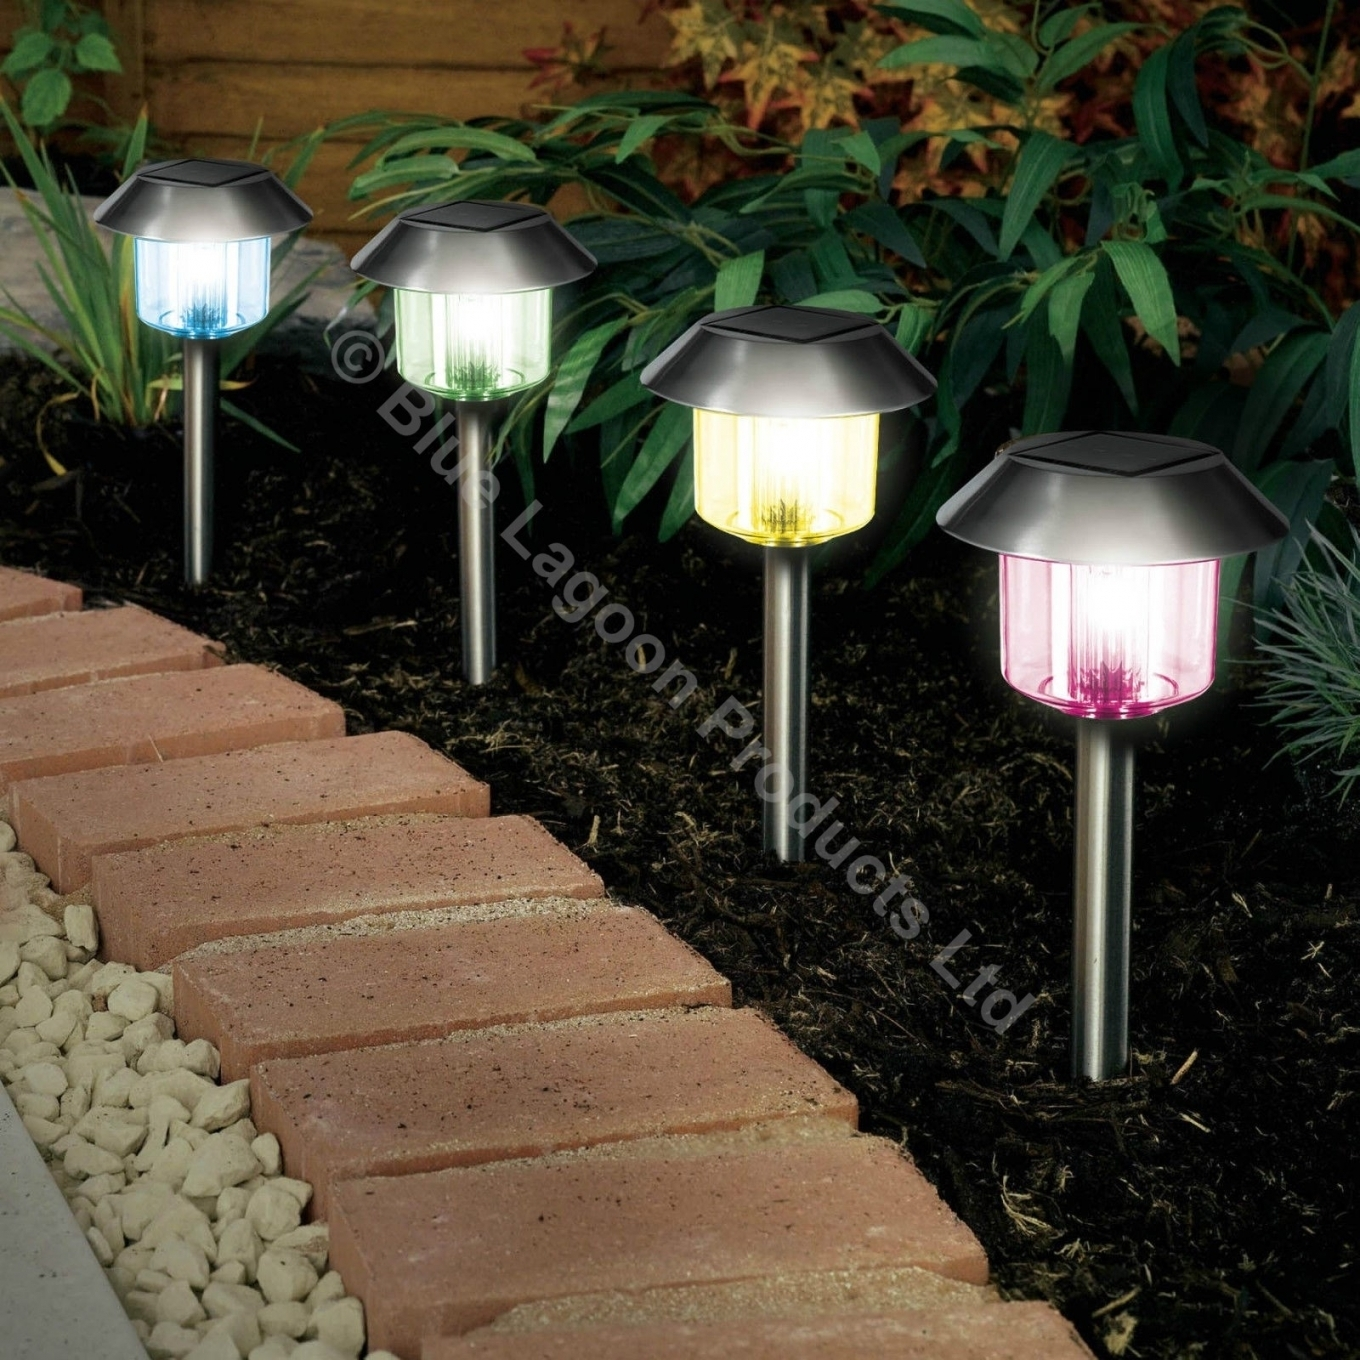 Popular Photo of Solar Powered Outdoor Lights